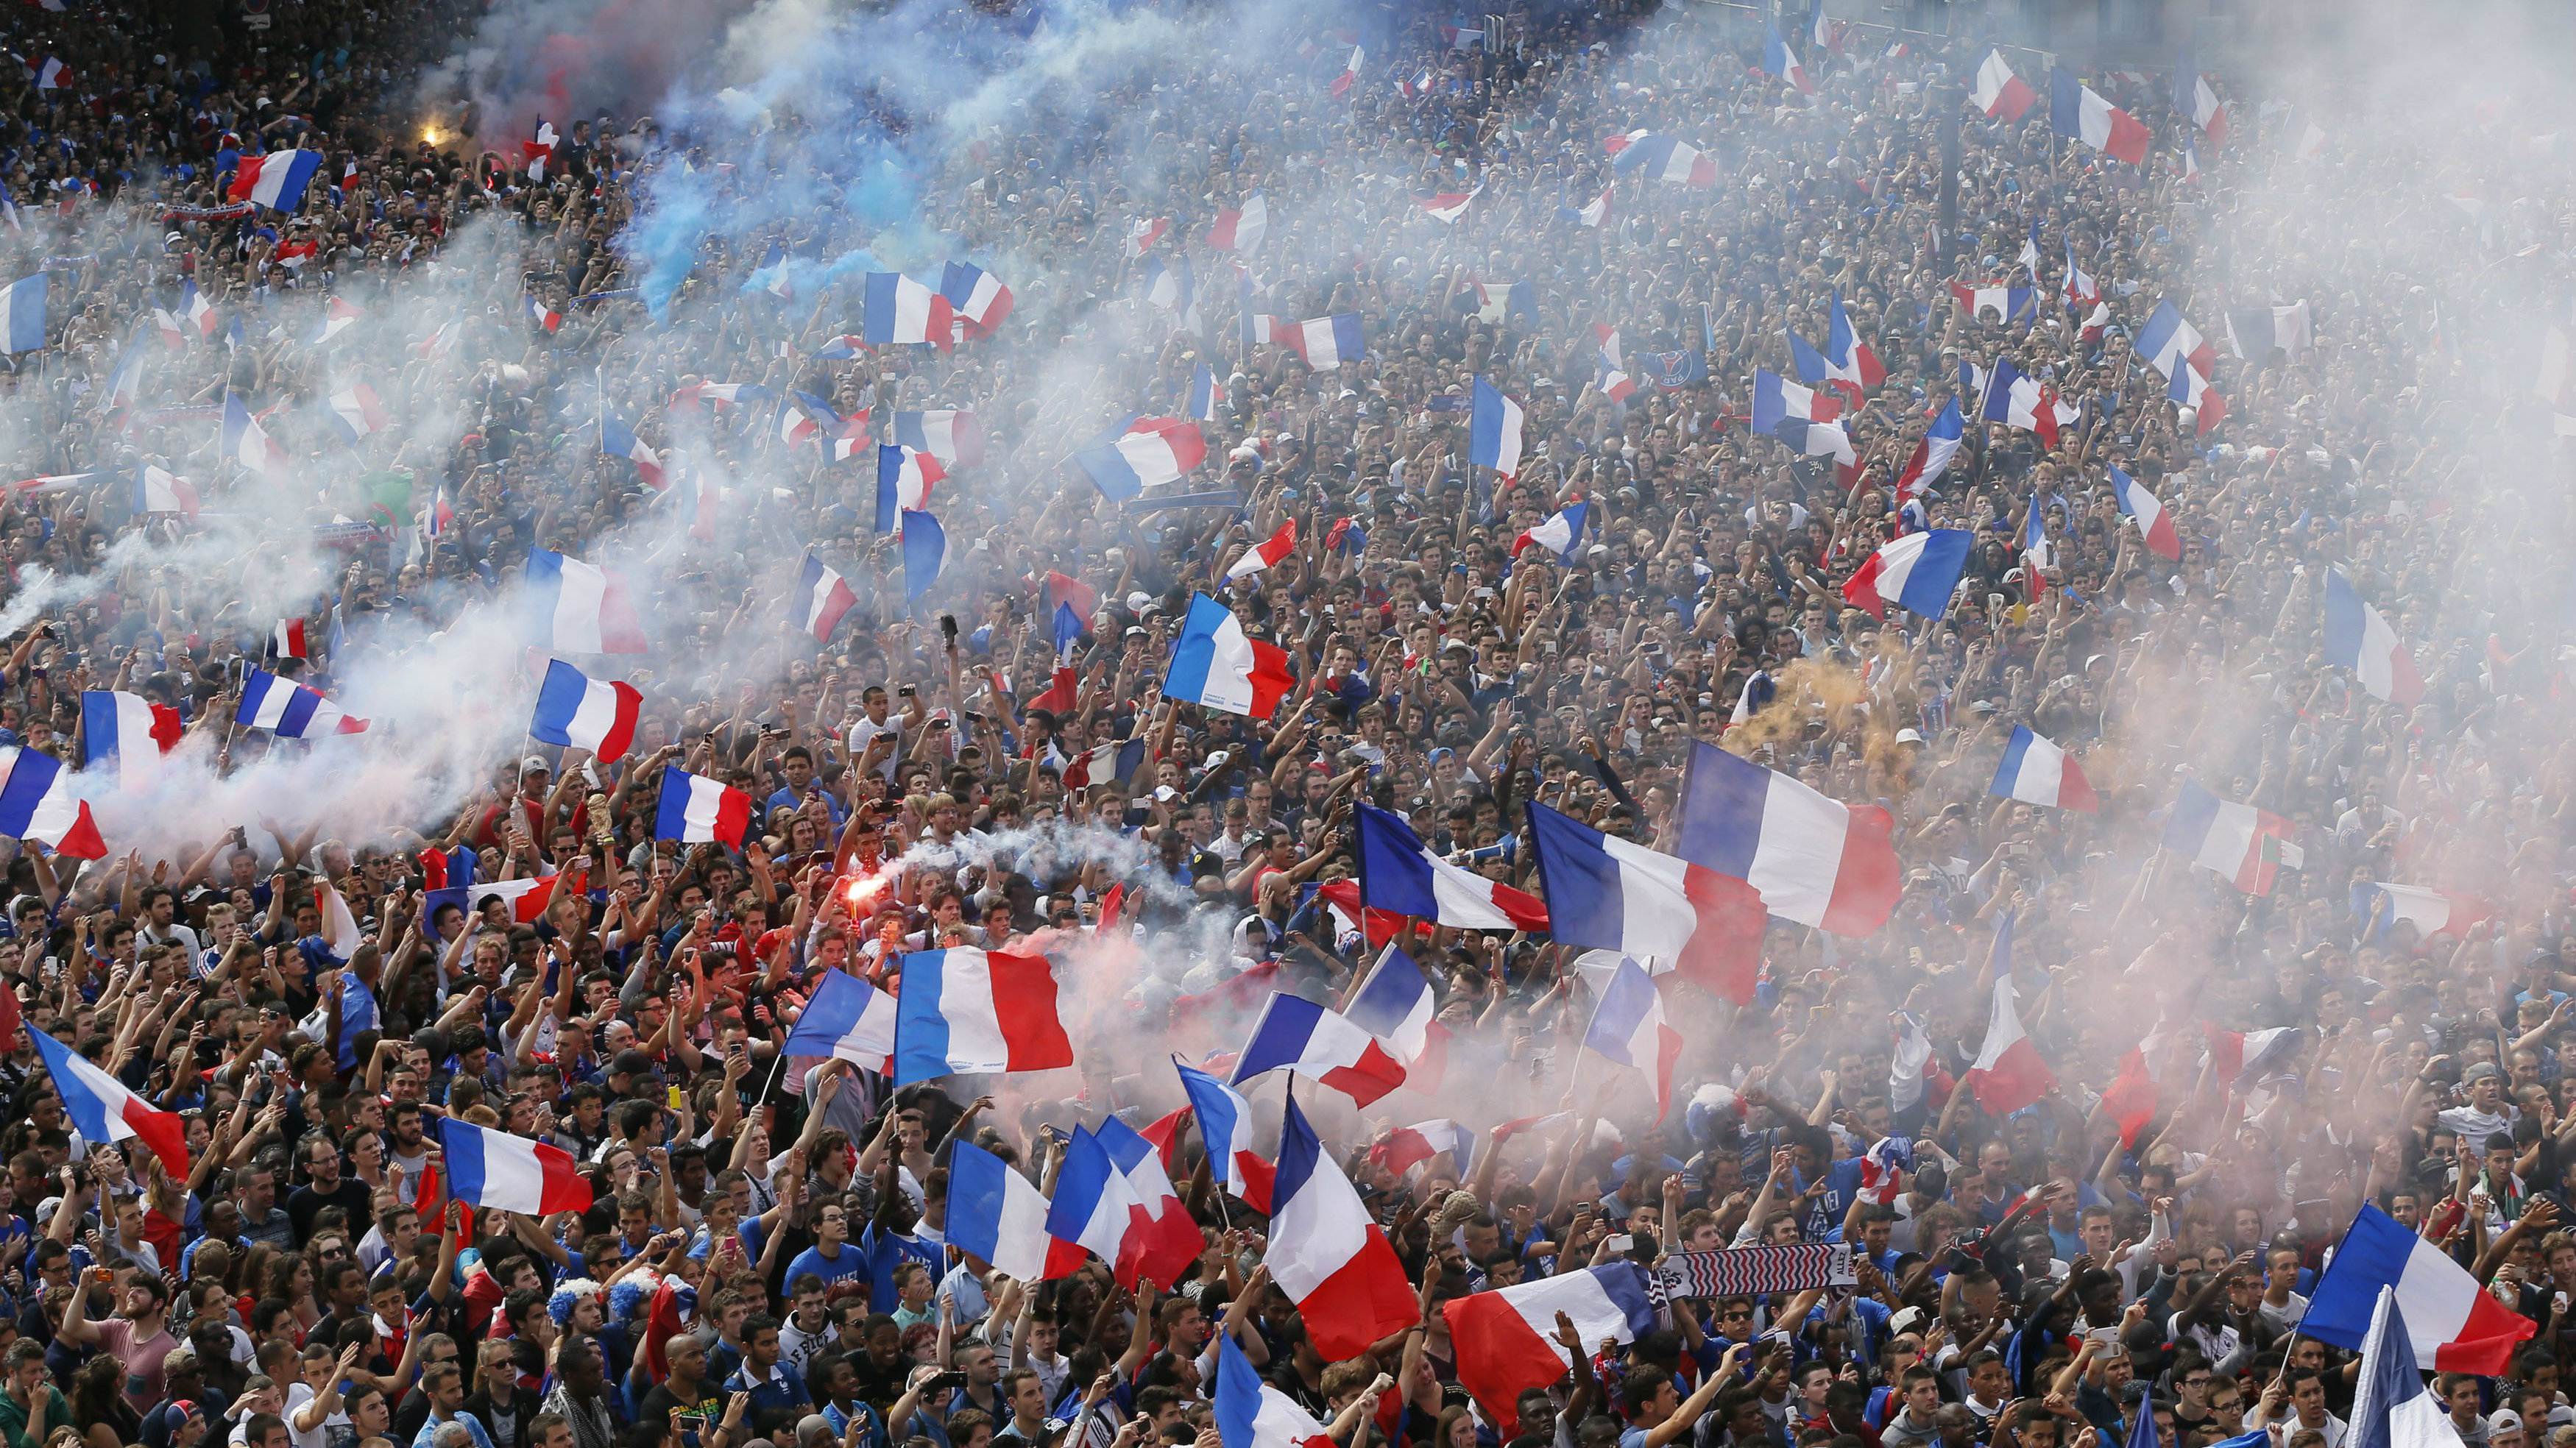 France team fans wave flags as they gathe to watch the 2014 World Cup quarter-finals soccer match between France and Germany at the Maracana stadium in Rio de Janeiro, on a giant screen outside the city hall in Paris July 4, 2014.